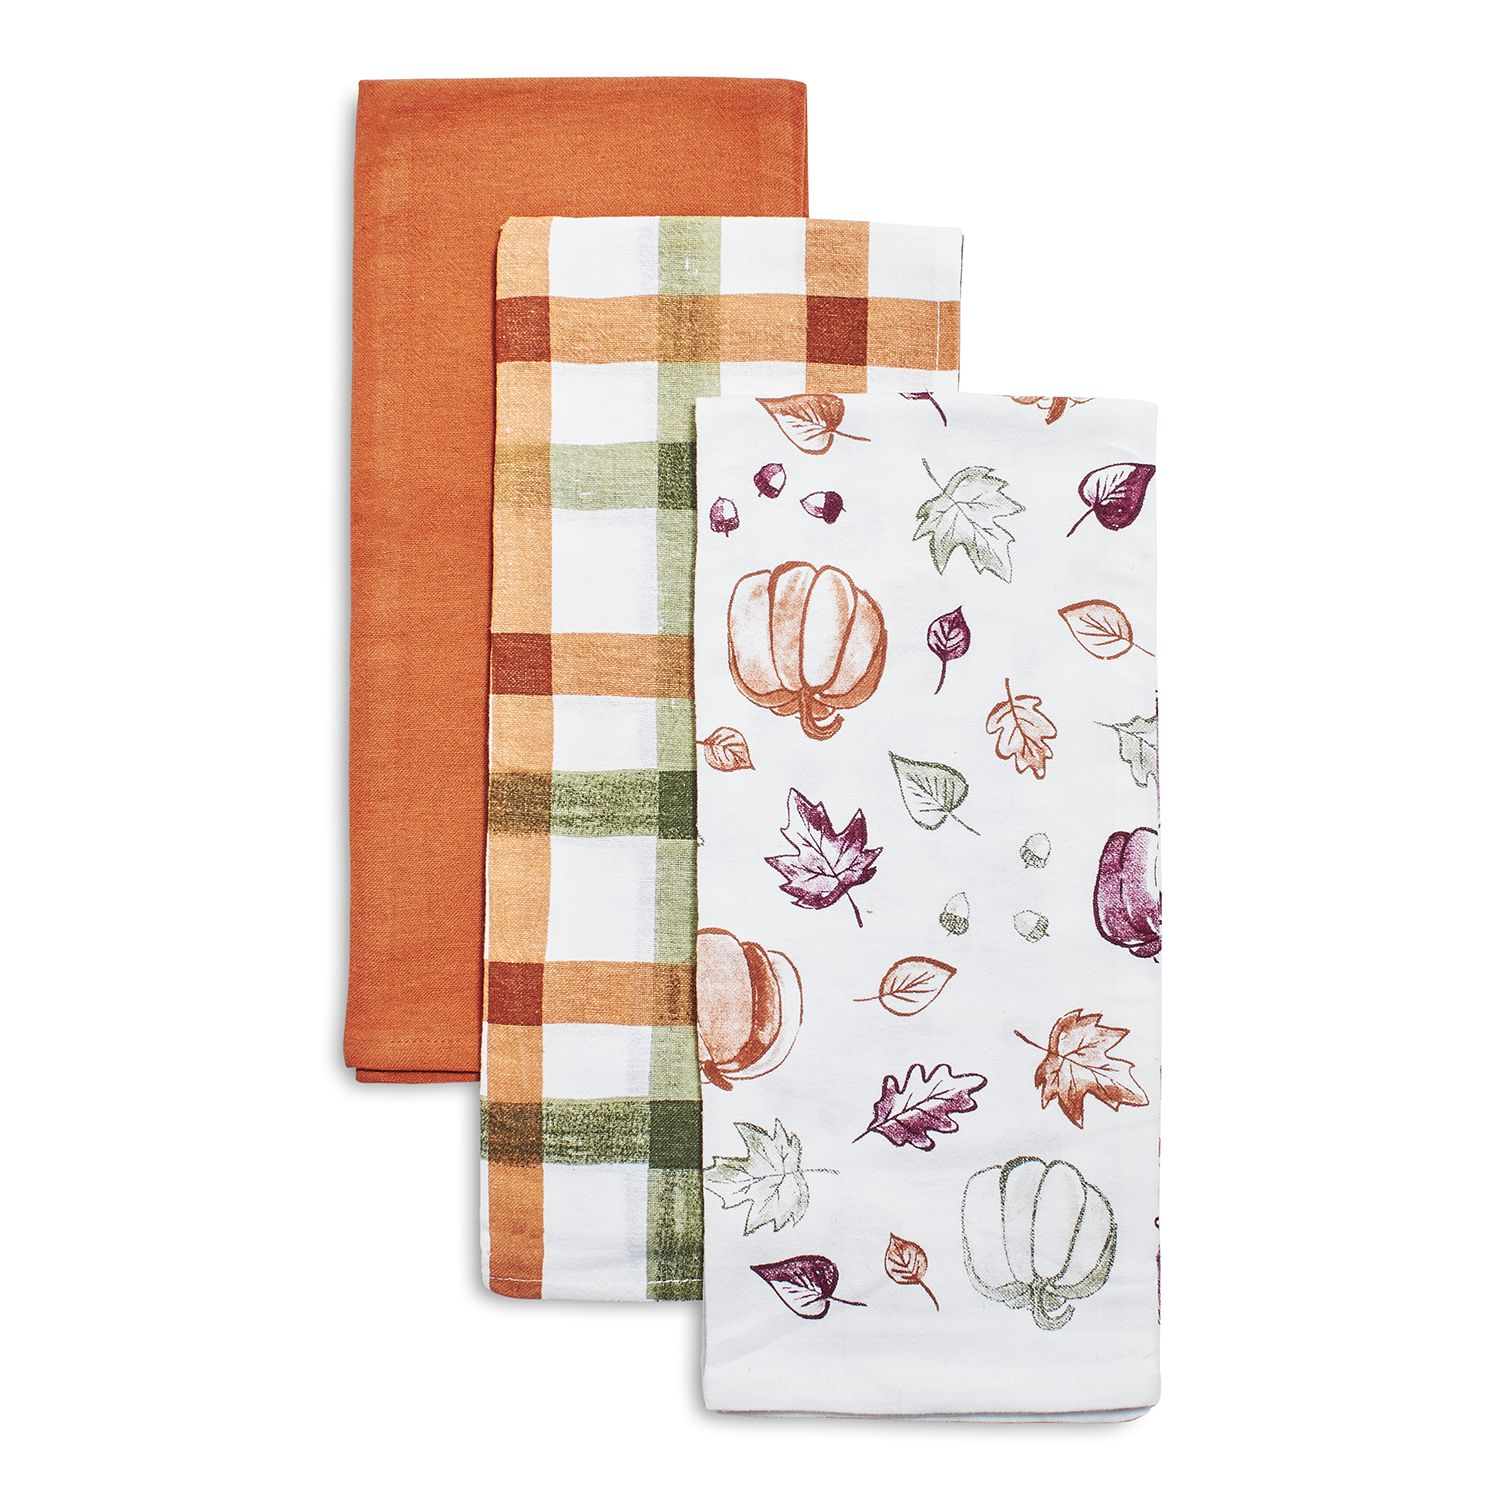 Shop Fall Flour Sack Kitchen Towels Set Of 3 And More From Sur La Table Flour Sack Kitchen Towels Sur La Table Kitchen Towels